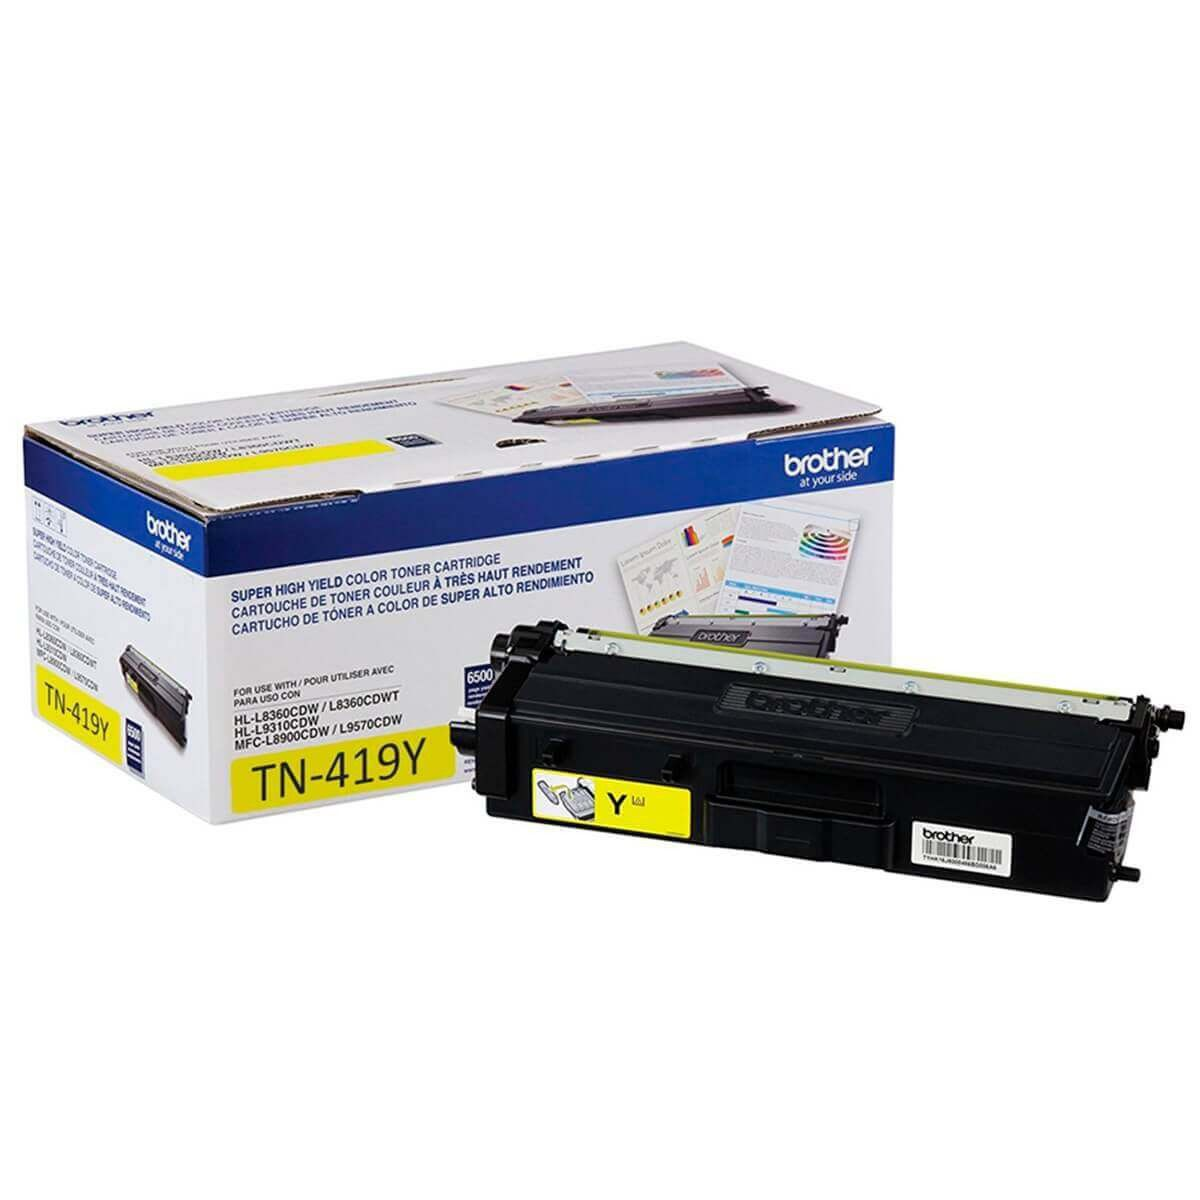 Toner Brother Original TN-419Y Yellow | HLL8360  | MFCL8610 | MFCL8900 | MFCL9570